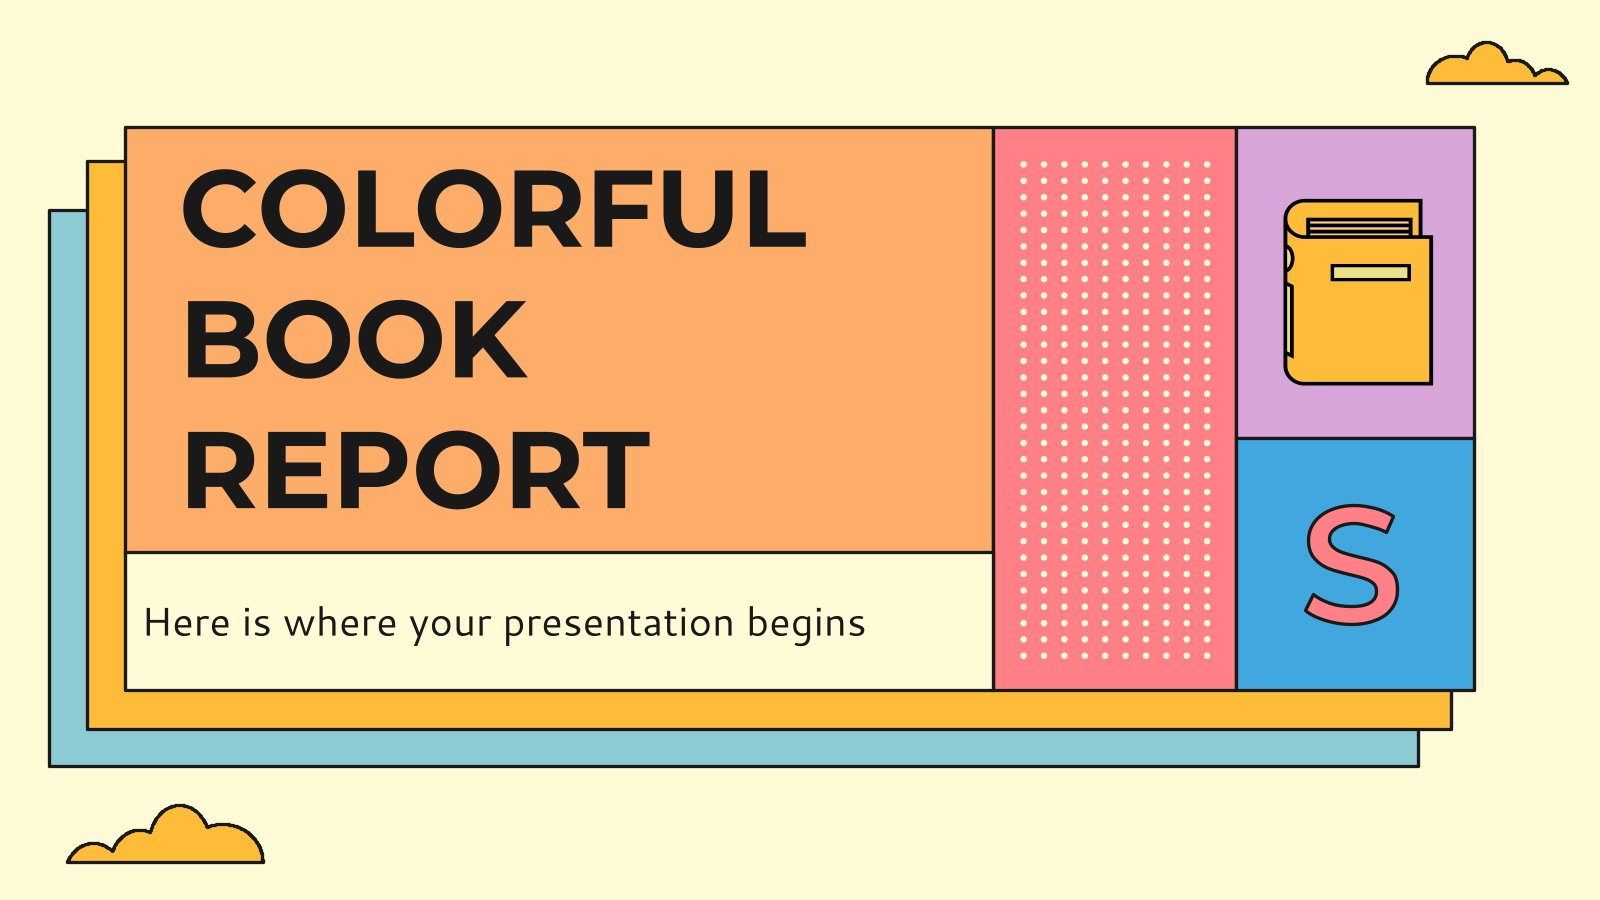 Colorful Book Report presentation template